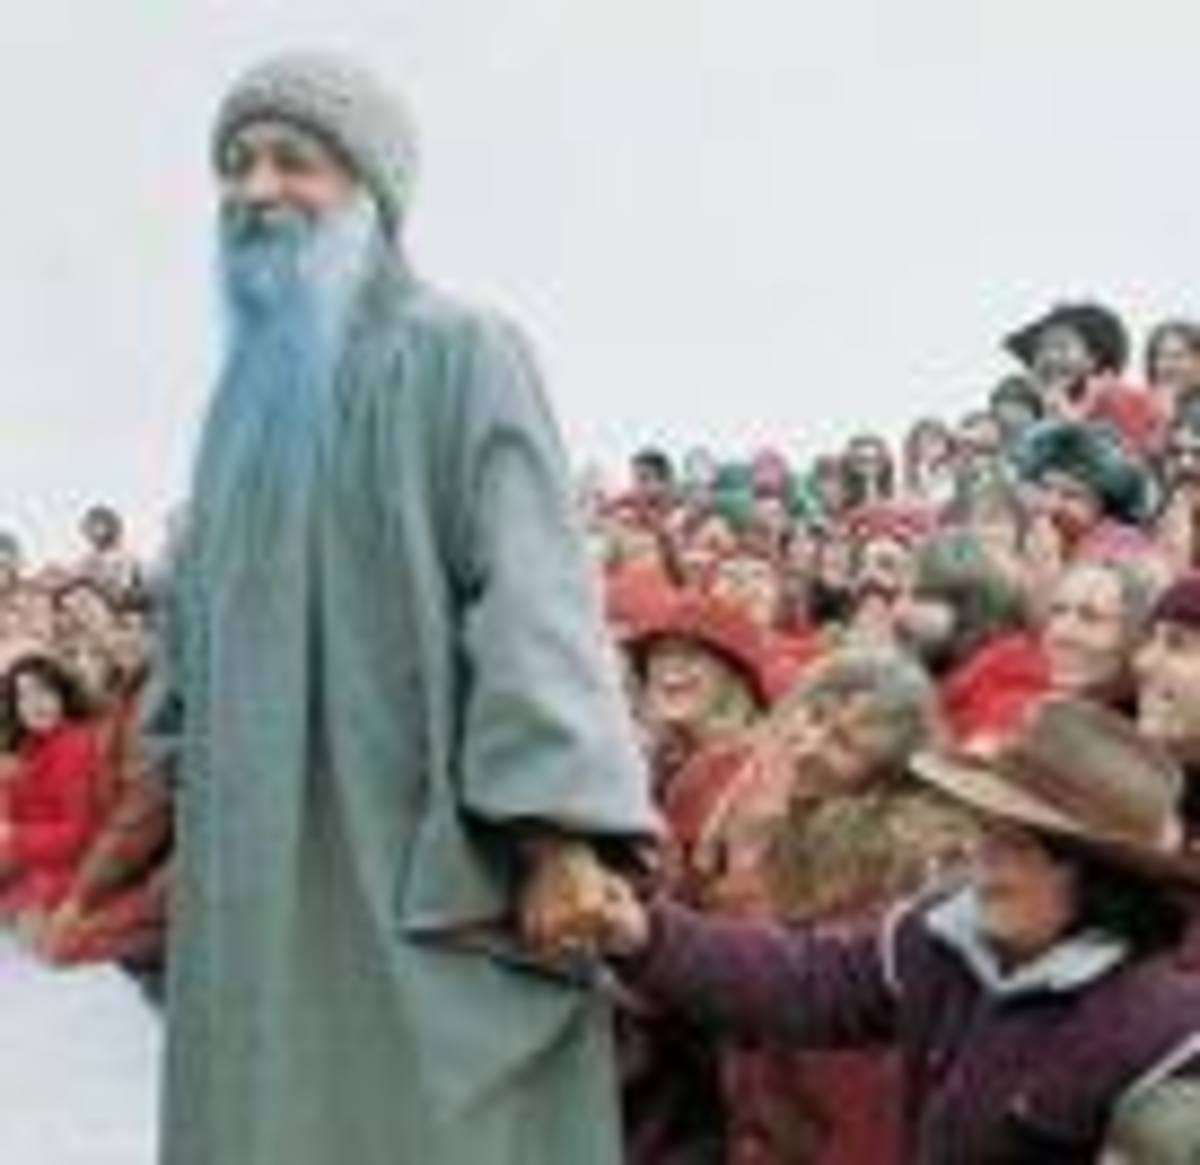 Millions of OSHO devotees